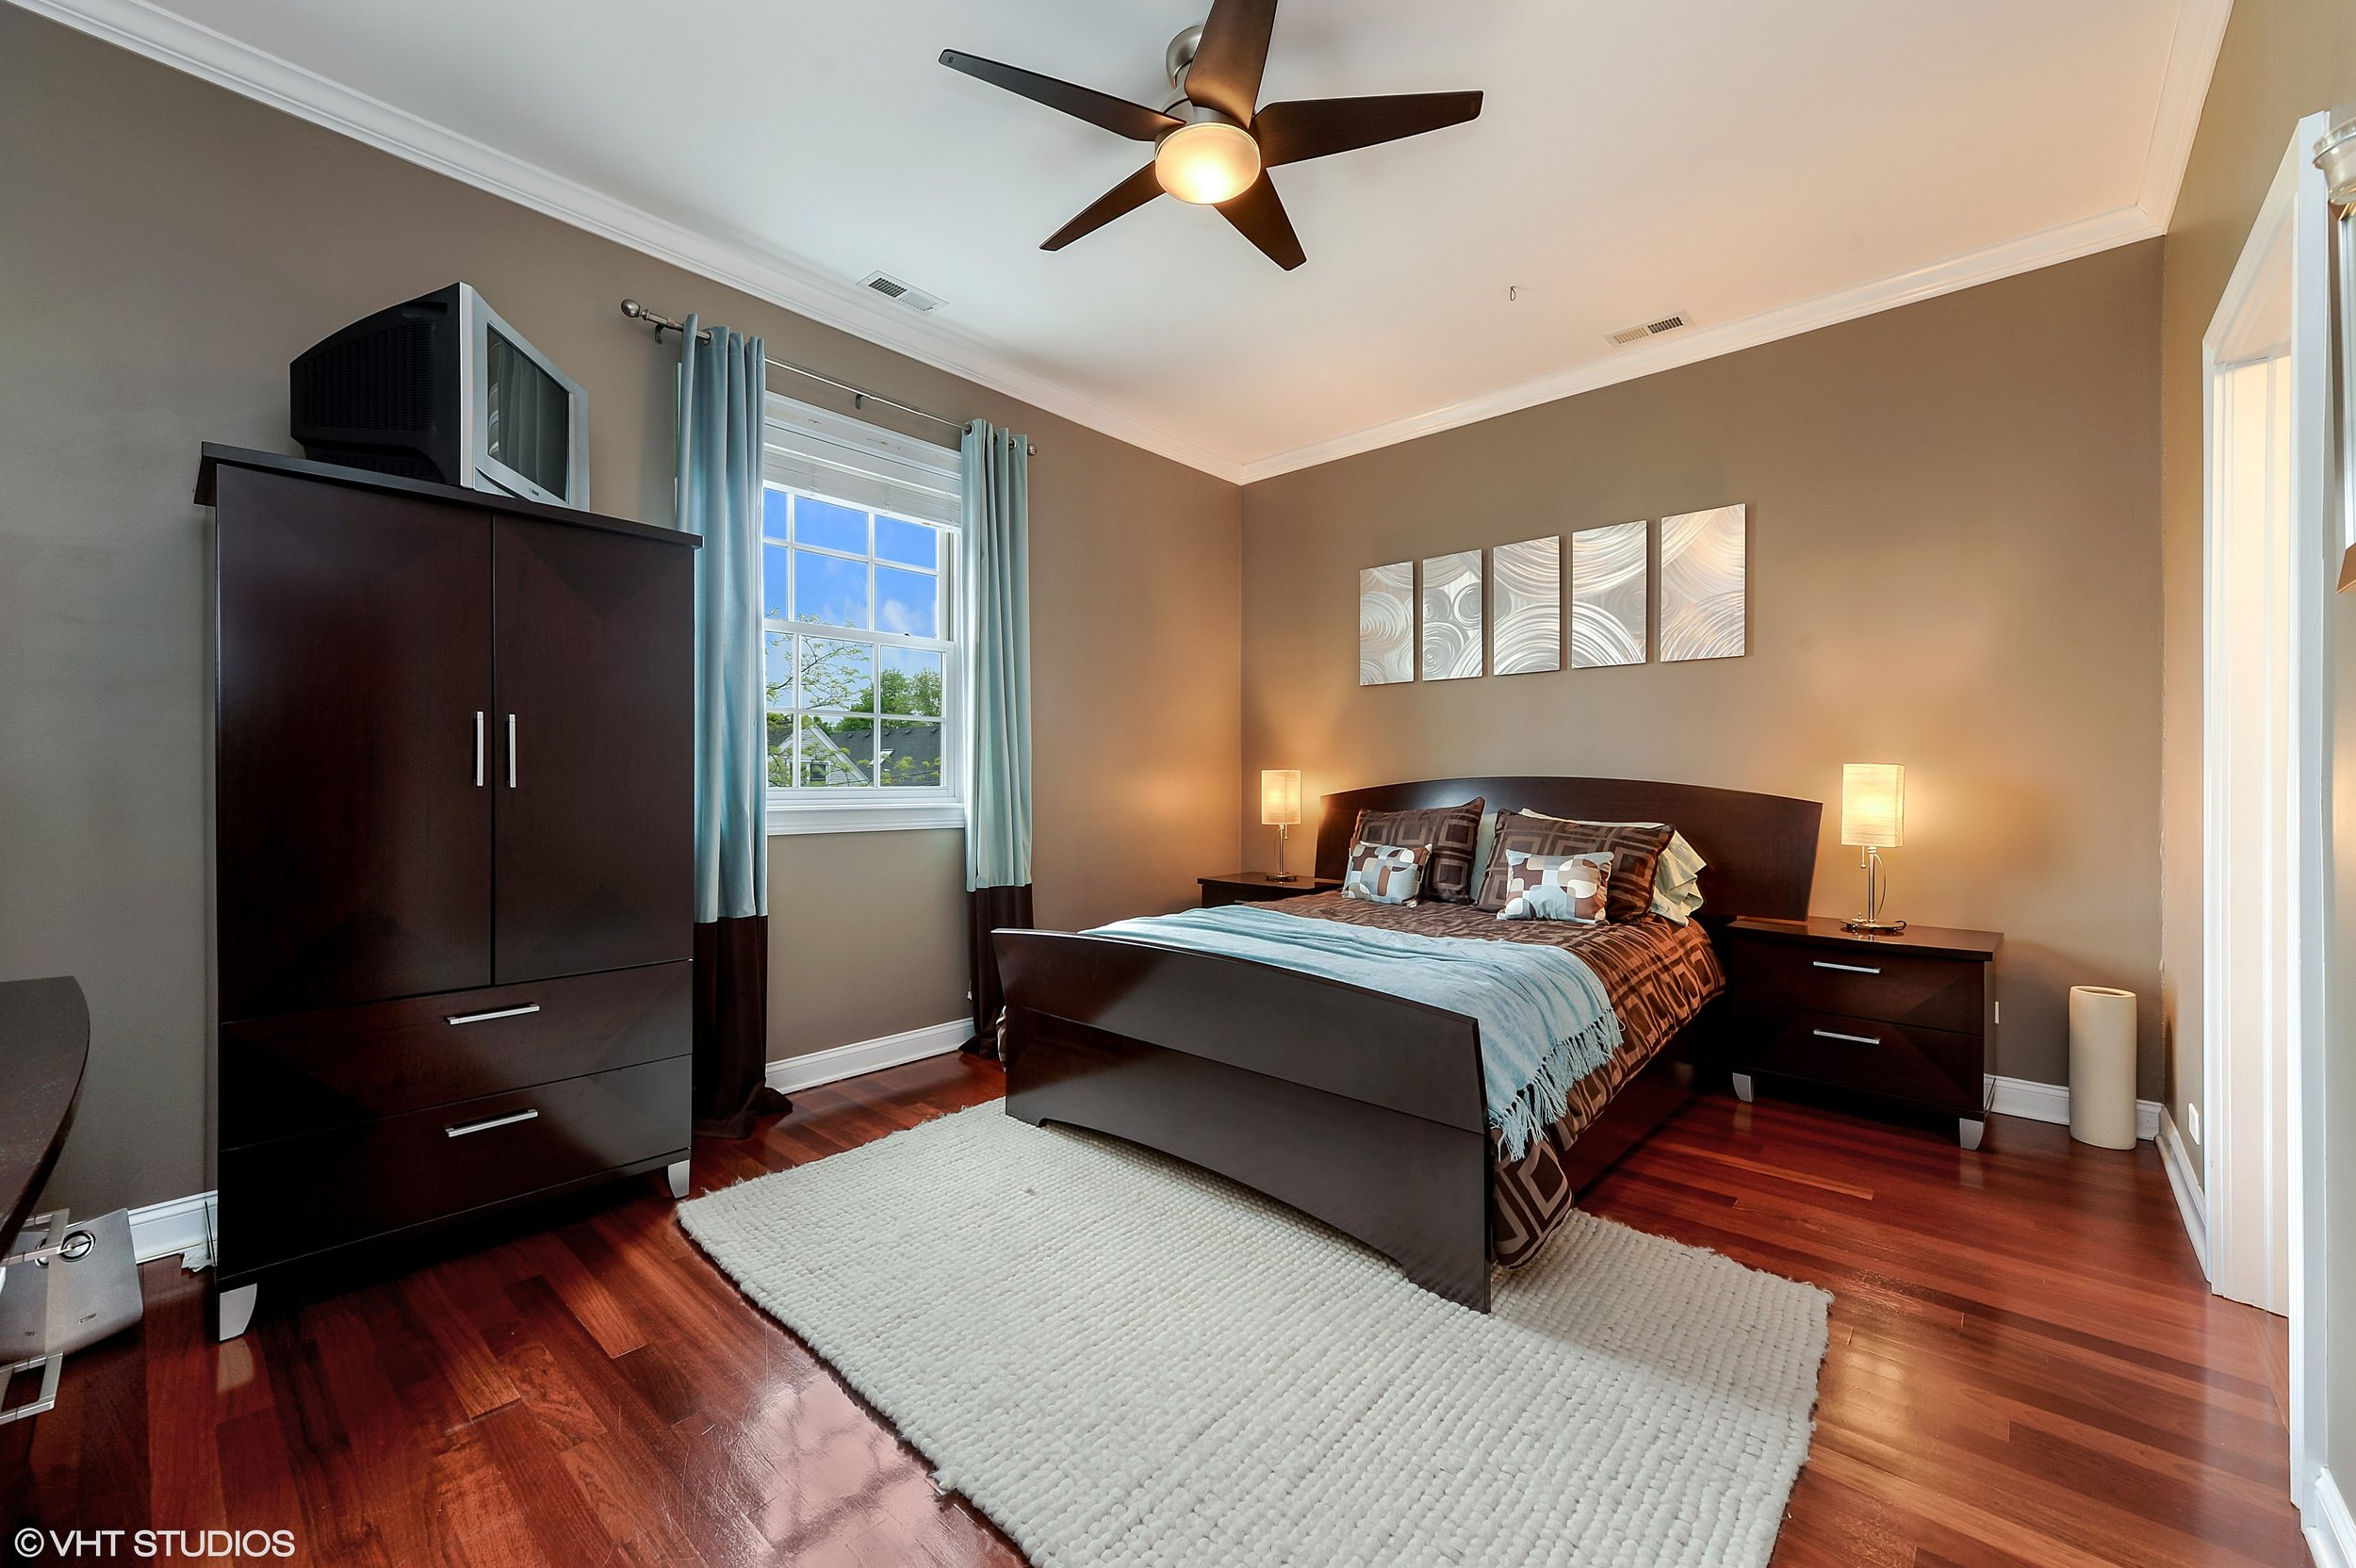 07_2641NorthAshlandAve_3S_14_MasterBedroom_HiRes.jpg